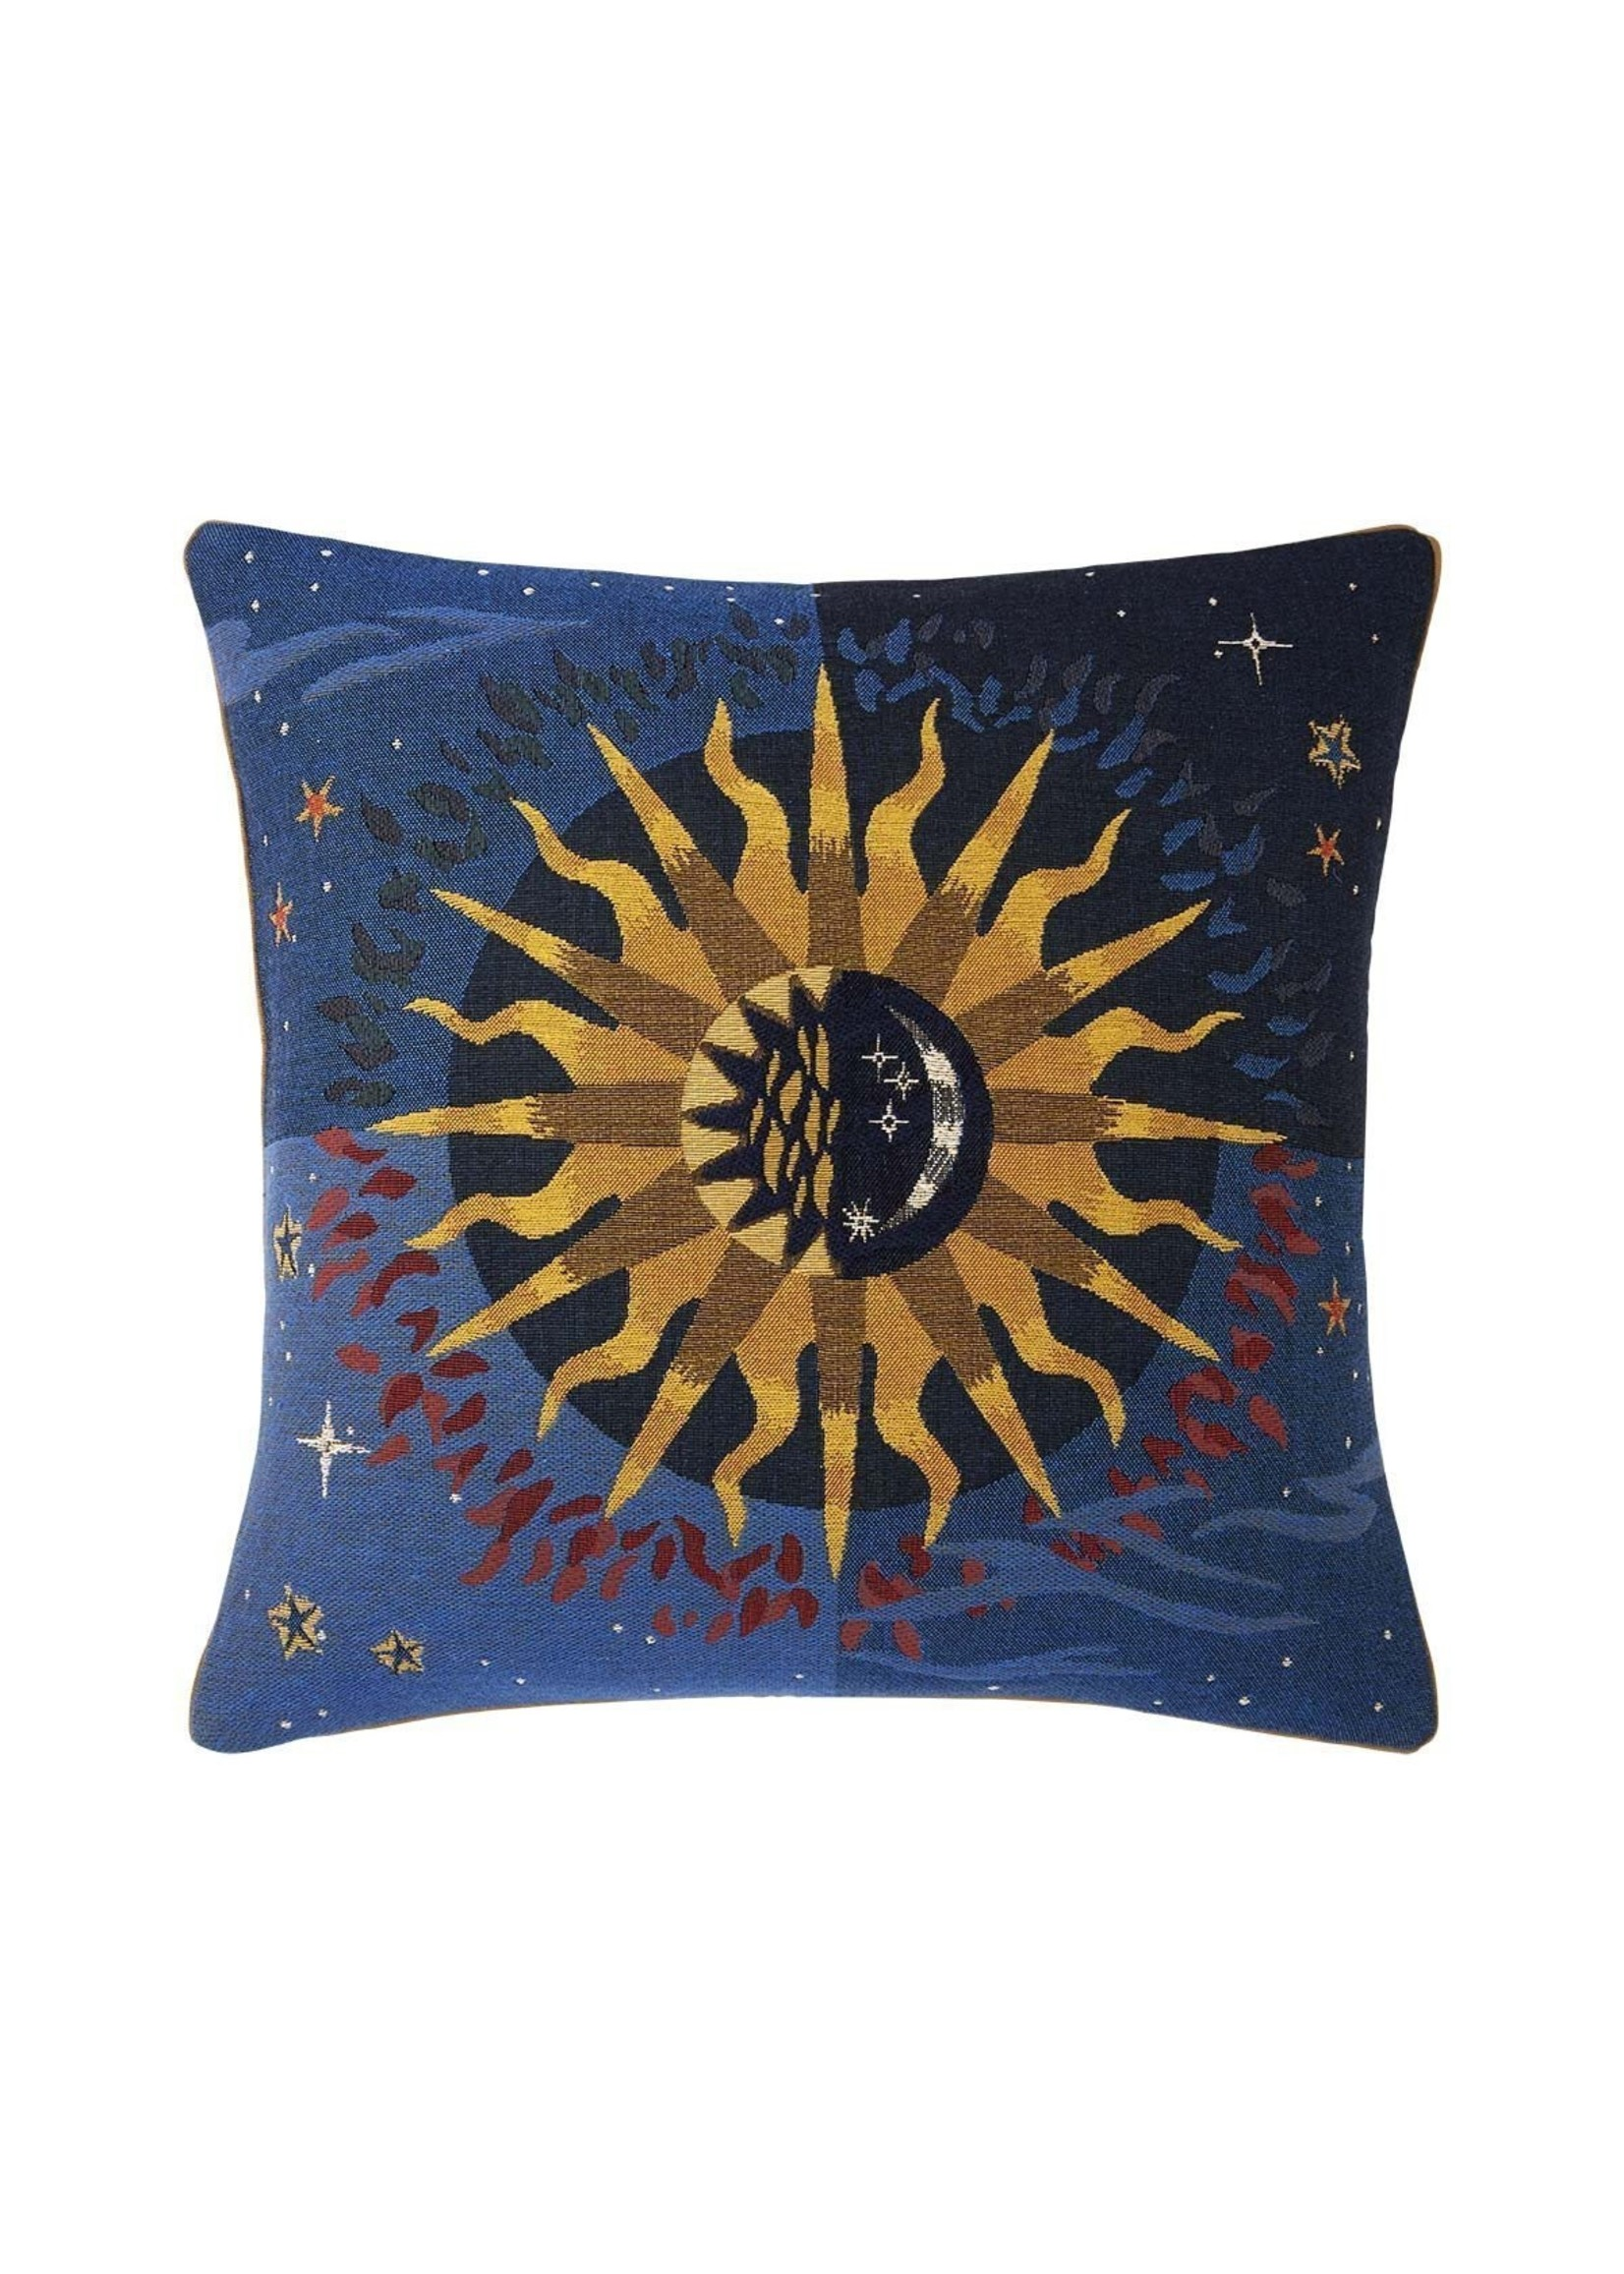 Soliel Nuit Pillow